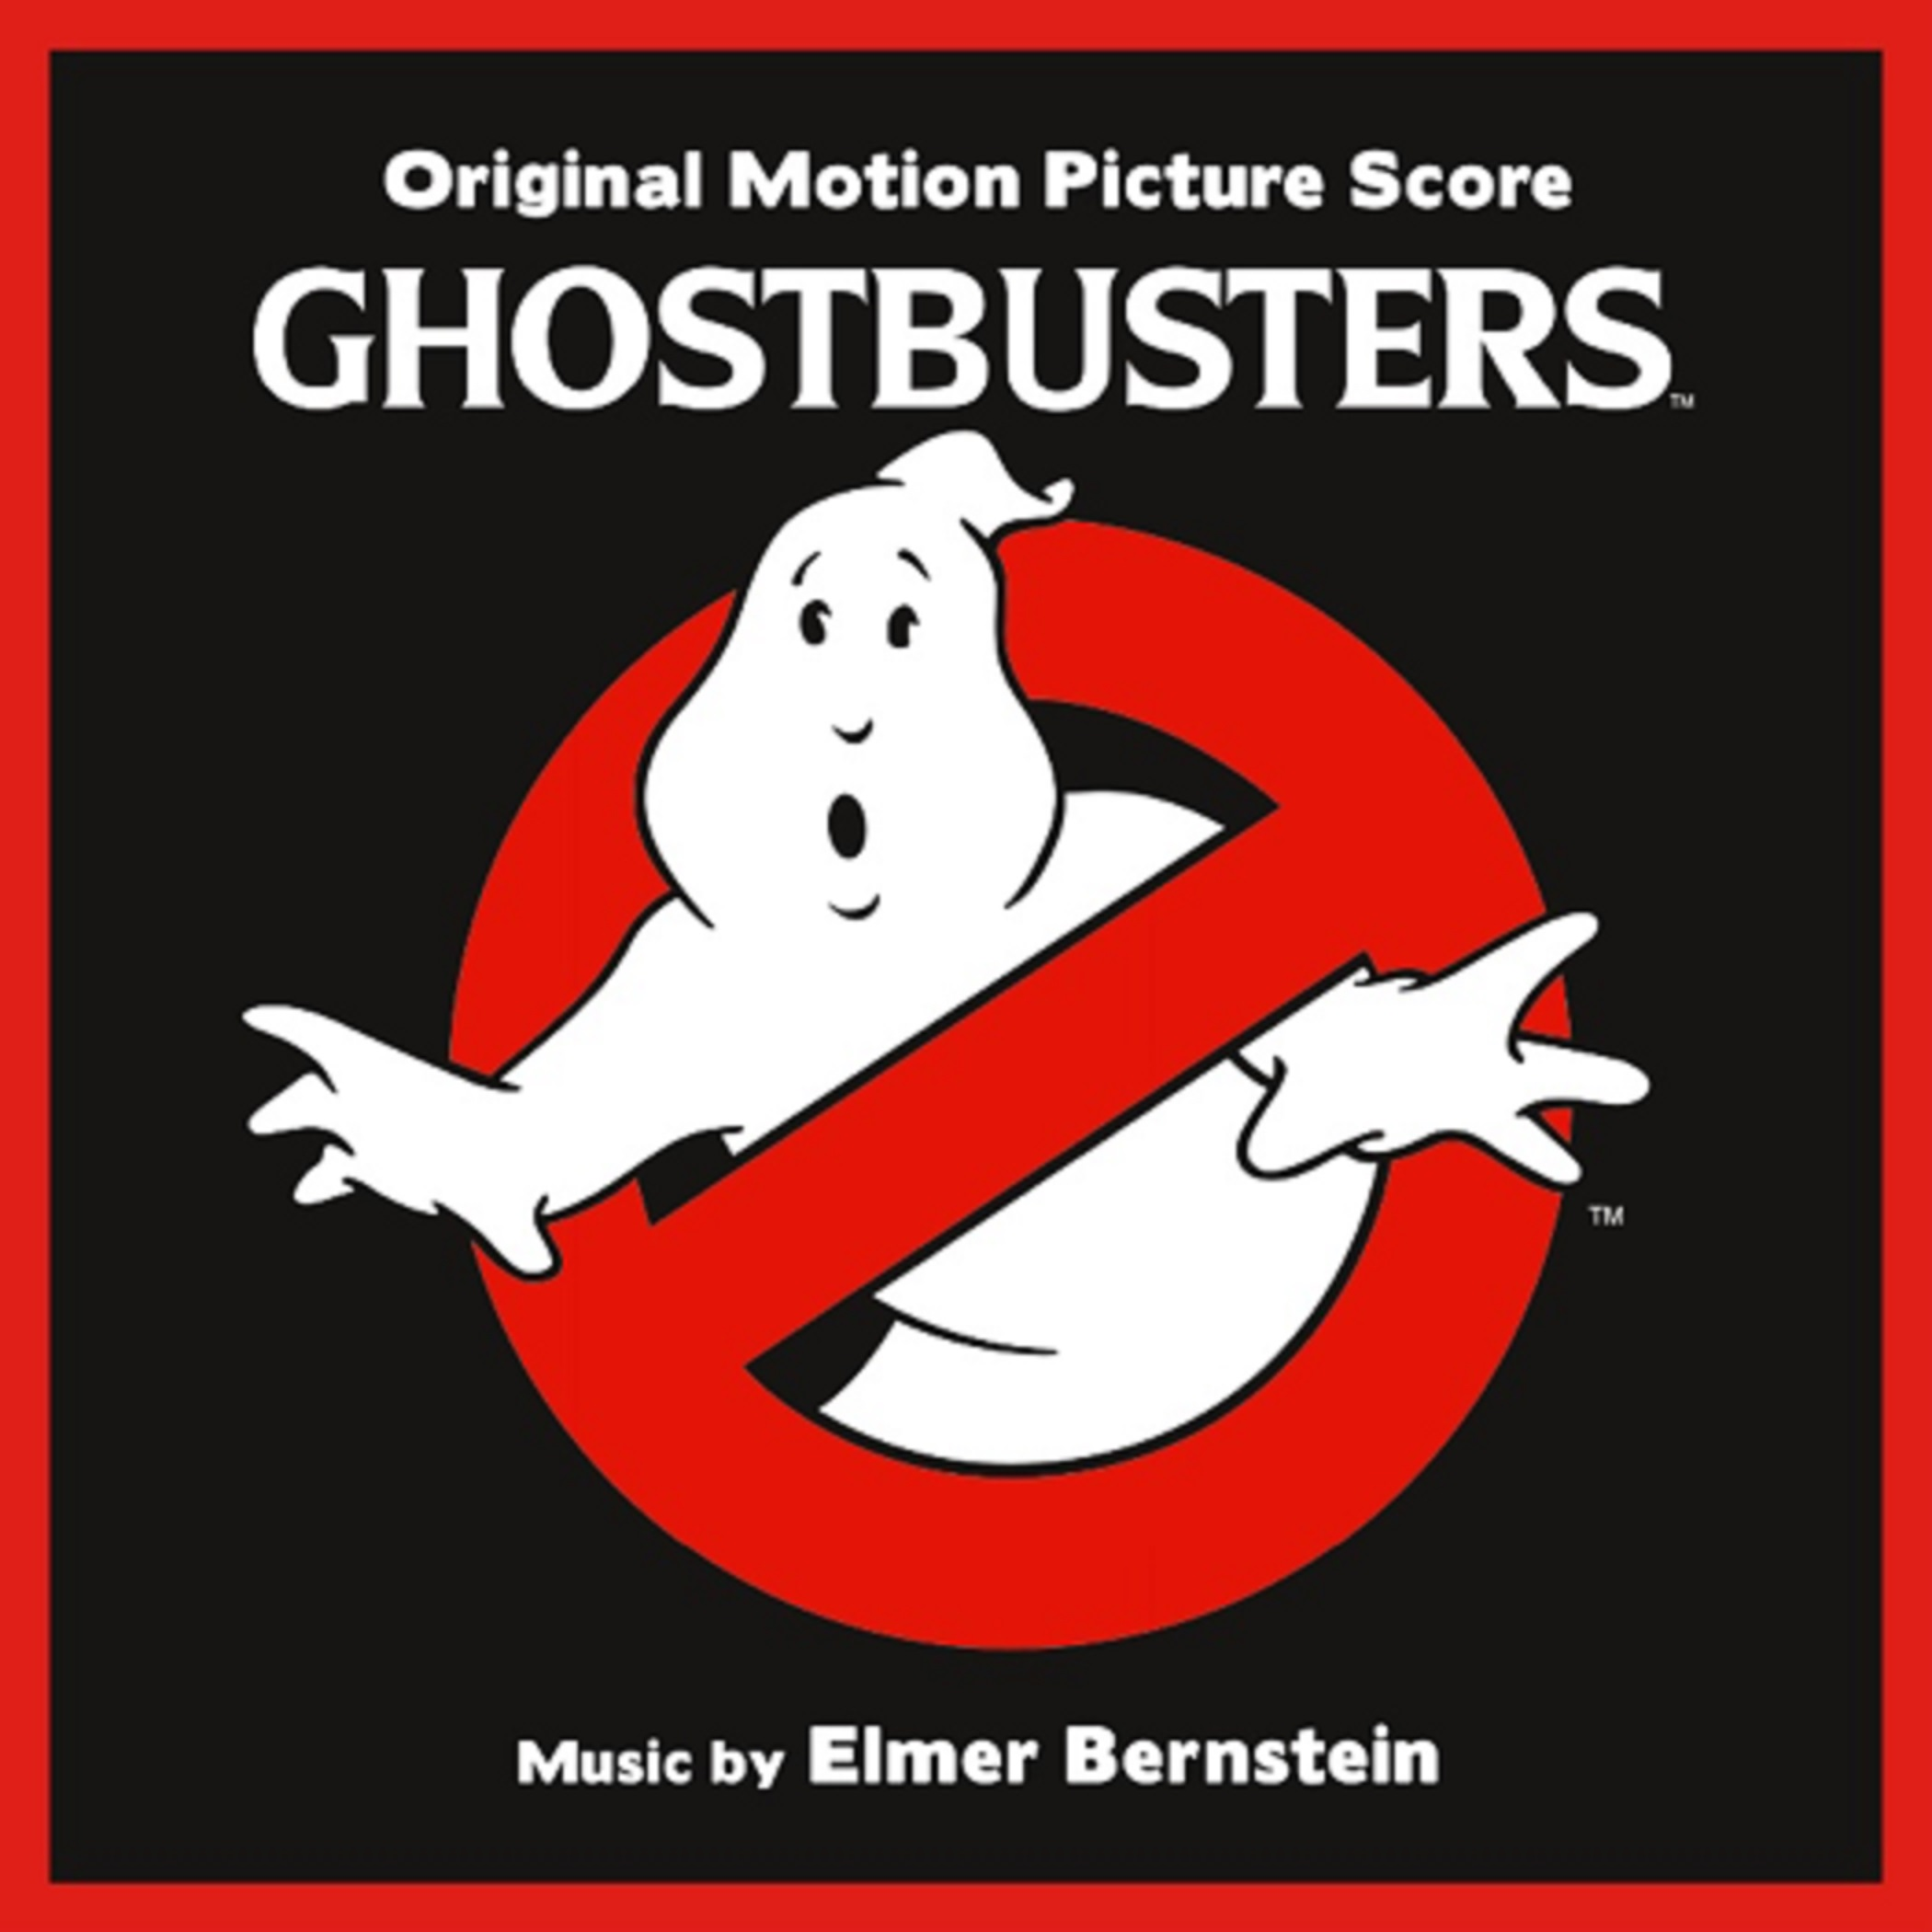 GHOSTBUSTERS Original Motion Picture Score Available Digitally